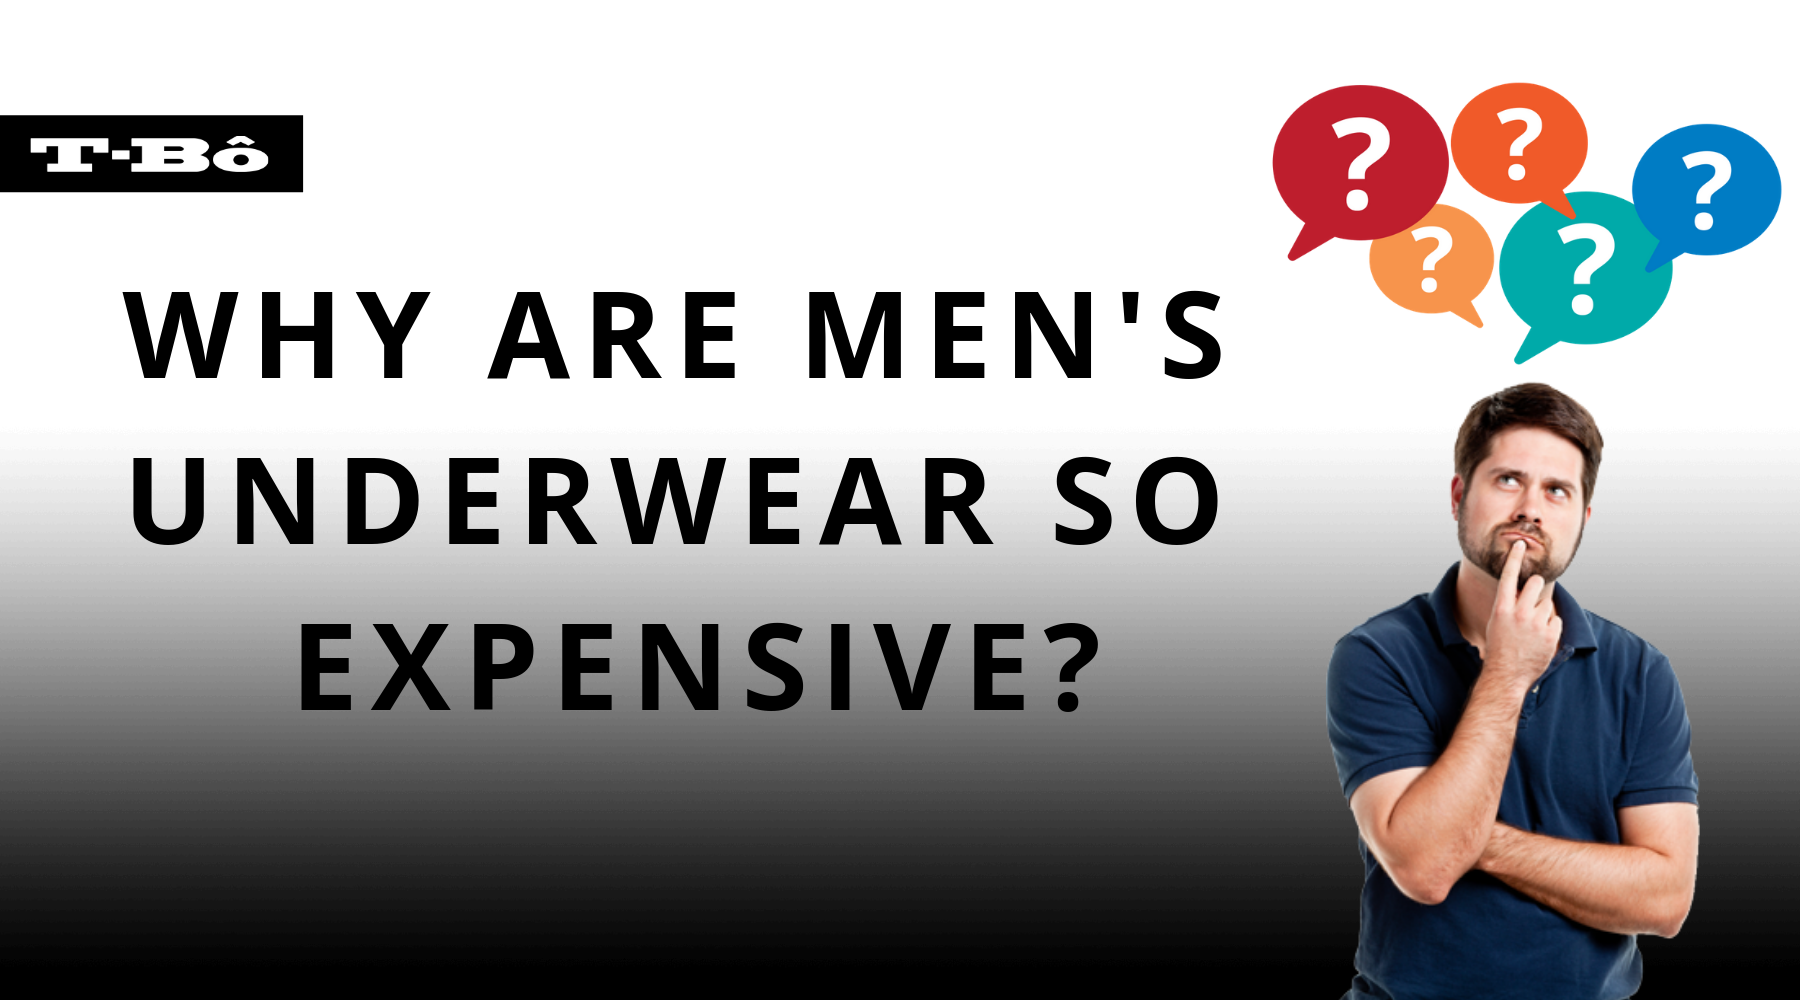 Why Are Men's Underwear Expensive